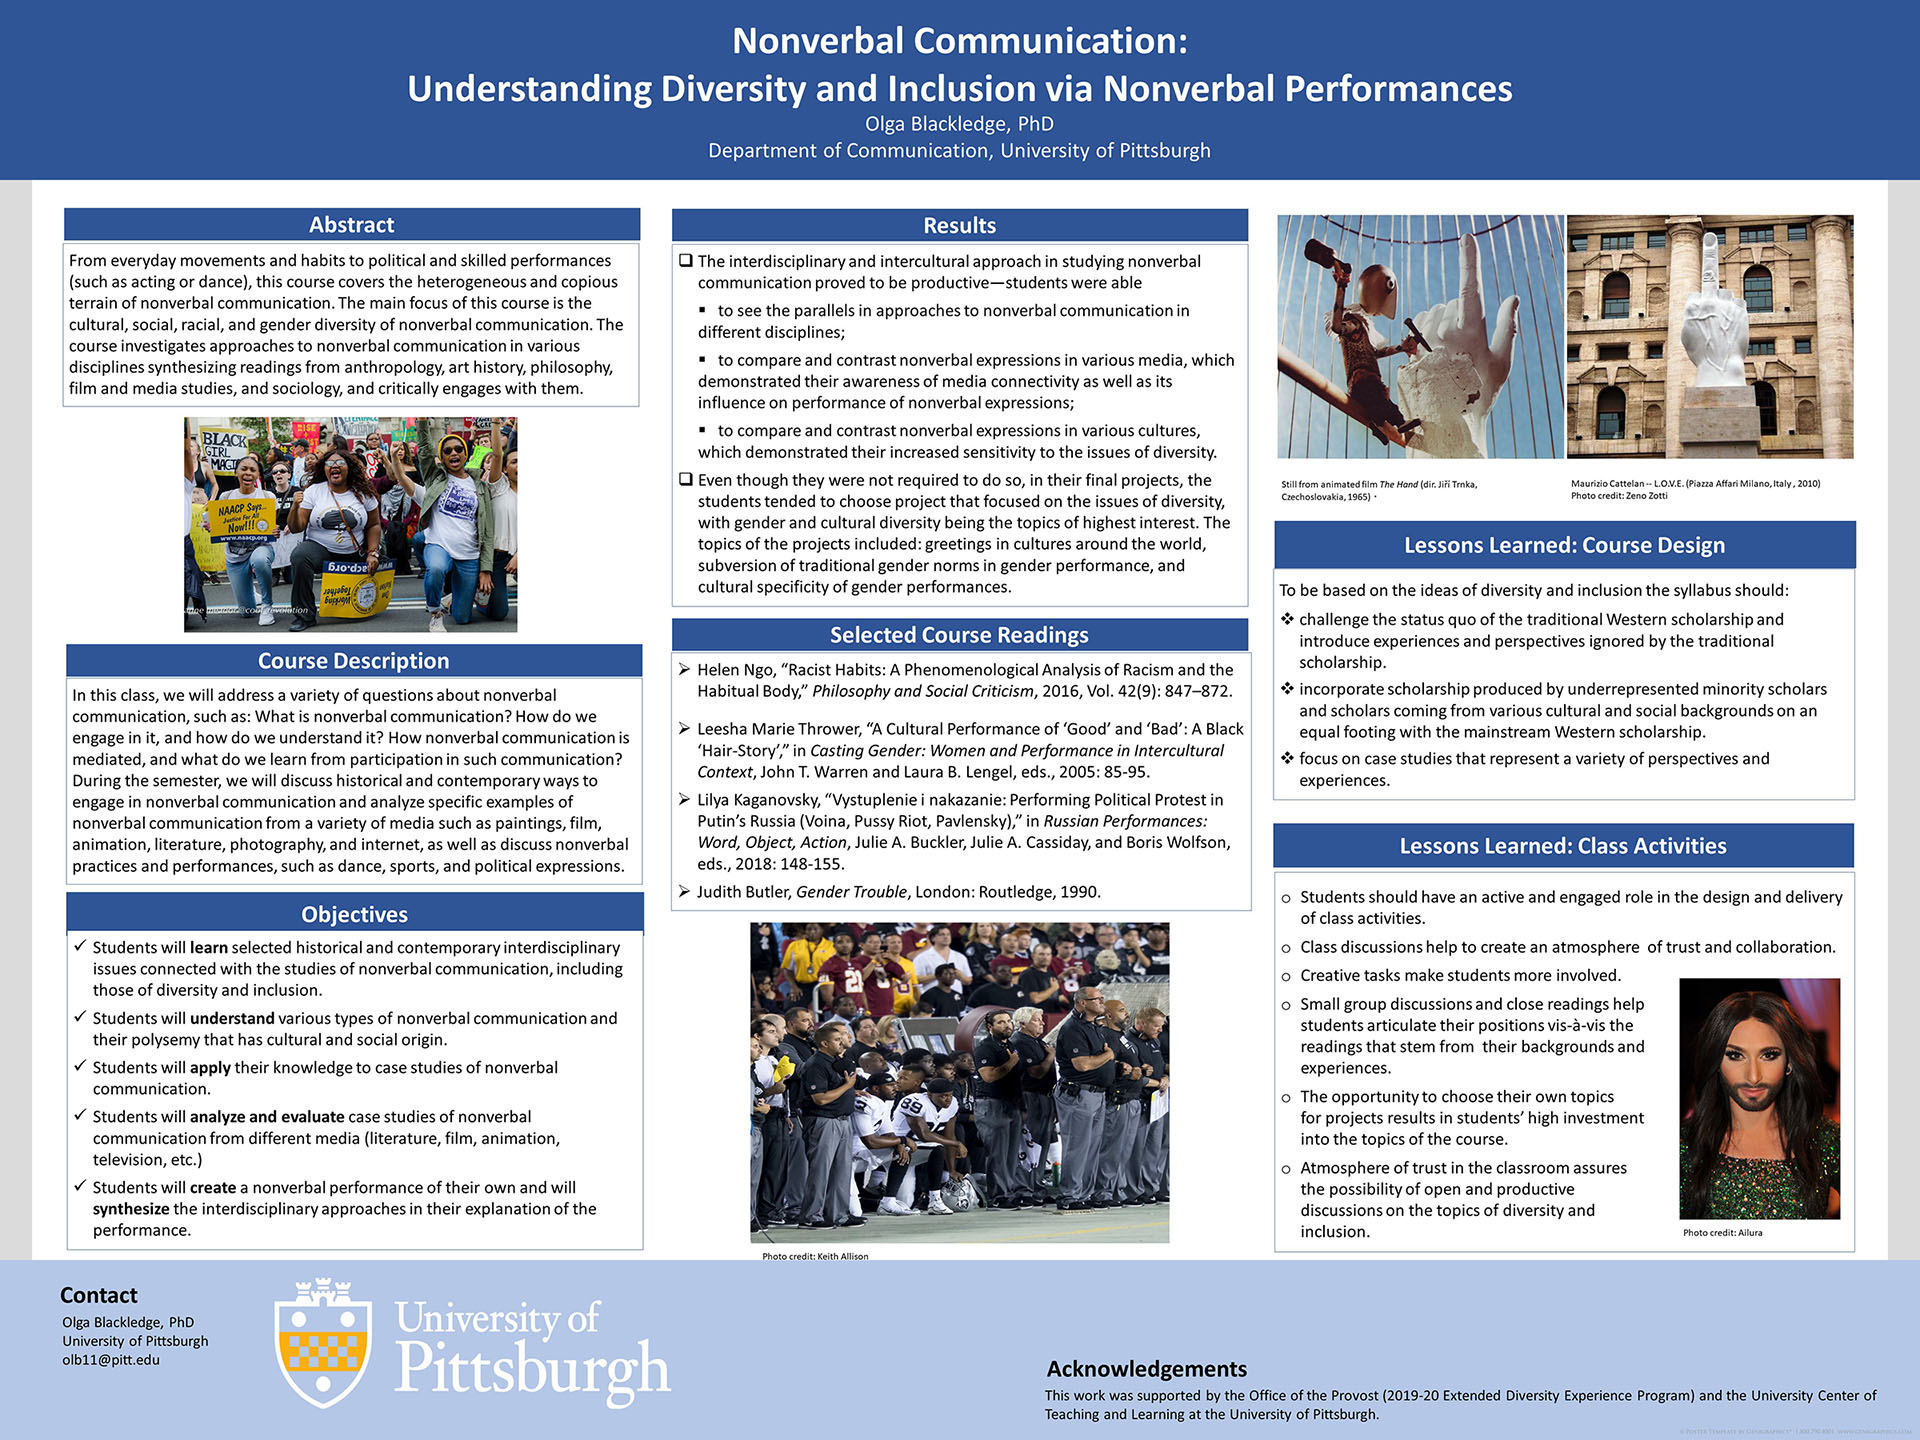 Olga Blackledge, PhD - Extended Diversity Experience 2020 Poster - Nonverbal Communication: Understanding Diversity and Inclusion via Nonverbal Performances